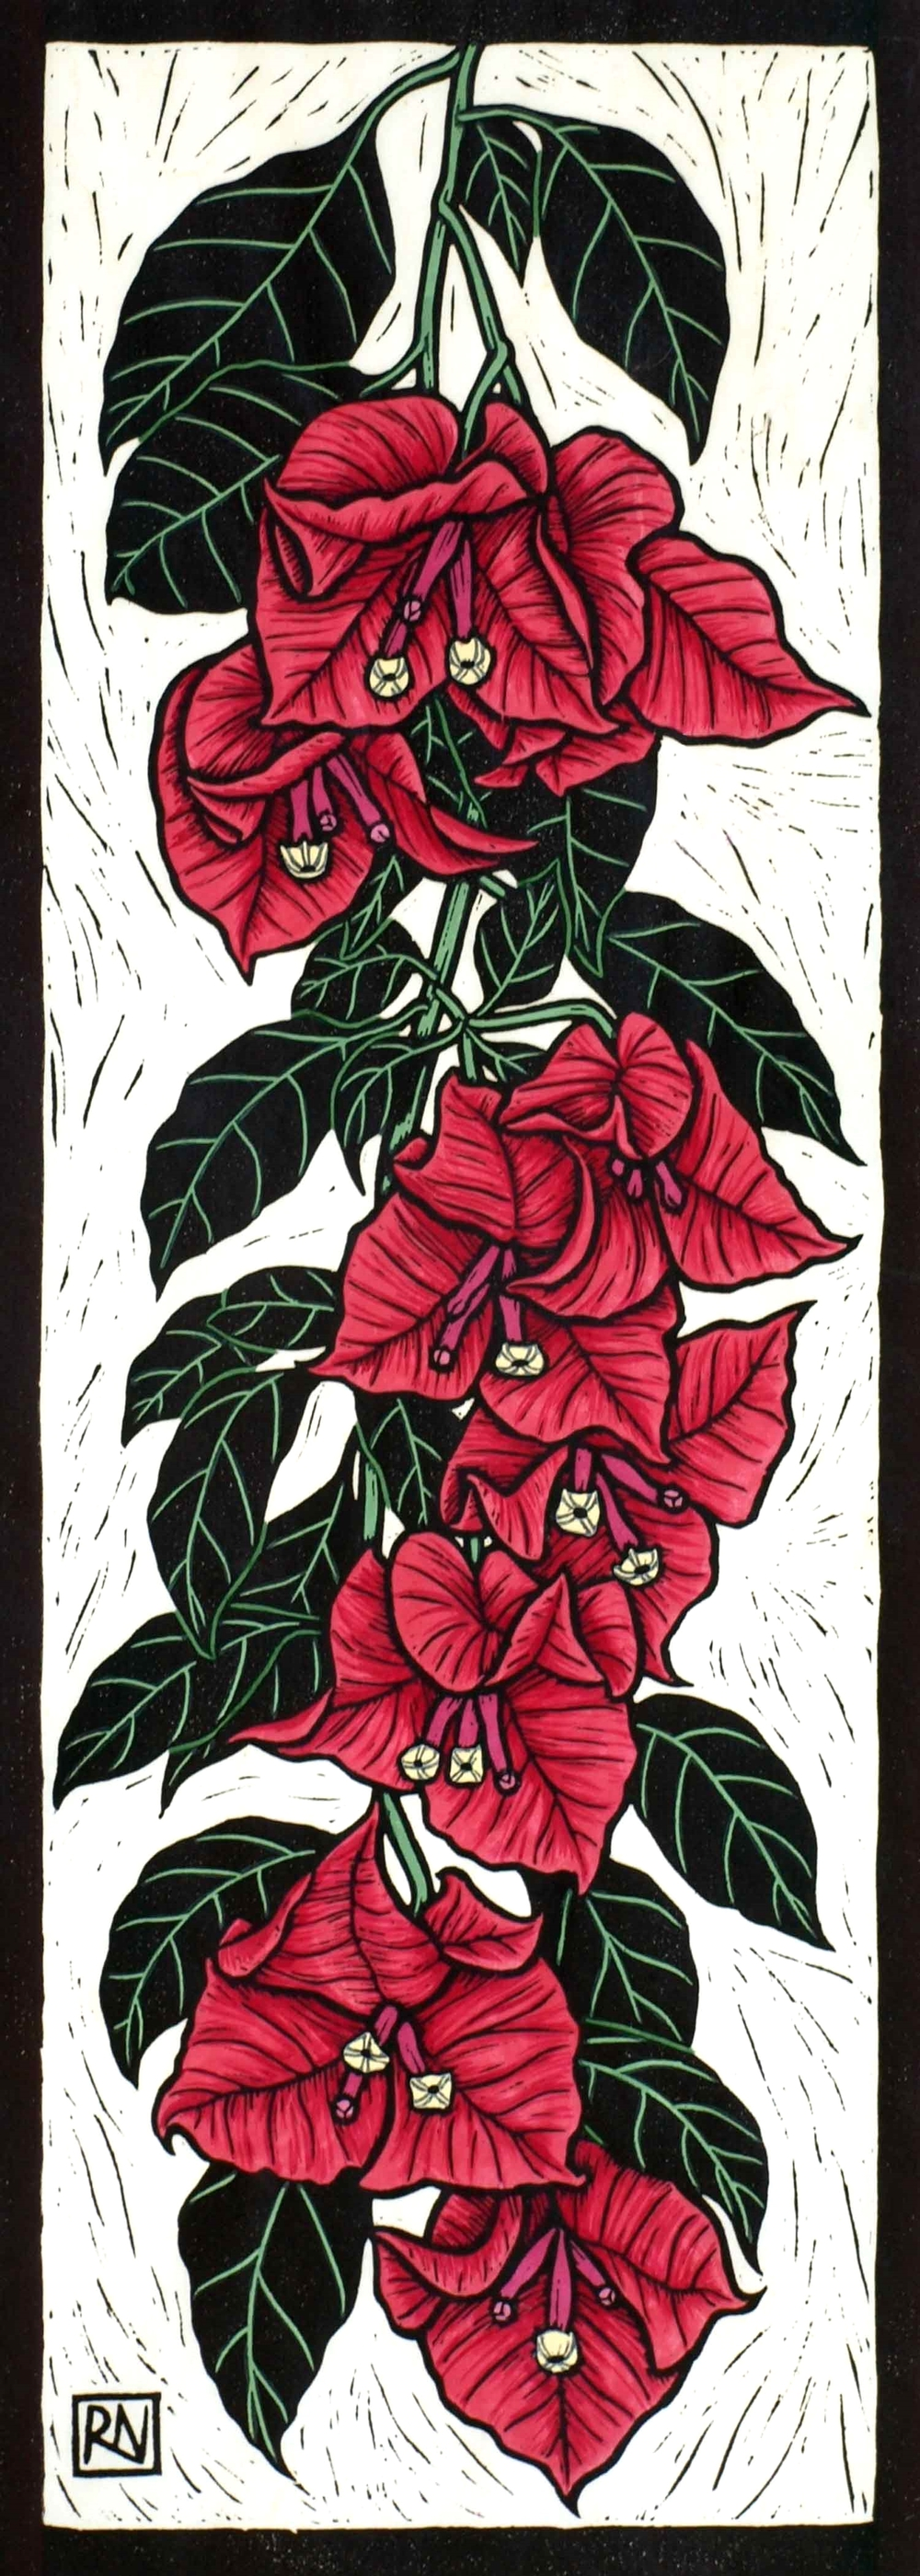 BOUGAINVILLEA                                           50 X 18 CM    EDITION OF 50                   HAND COLOURED LINOCUT ON HANDMADE JAPANESE PAPER                $650